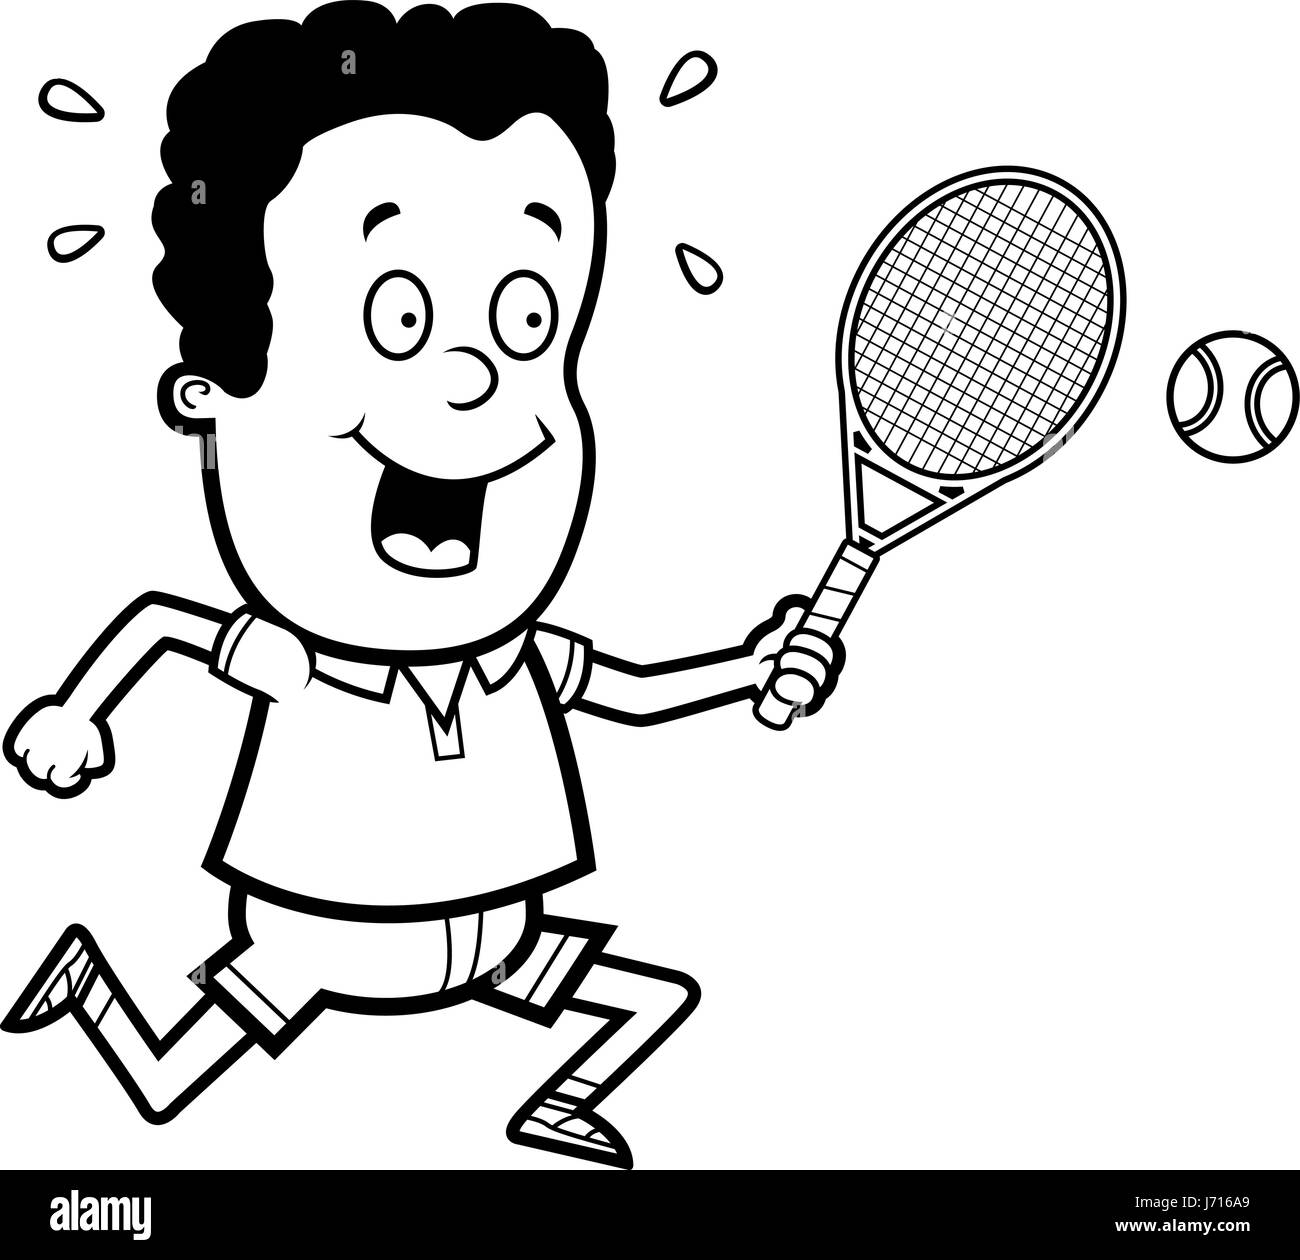 A cartoon illustration of a child playing tennis. - Stock Image